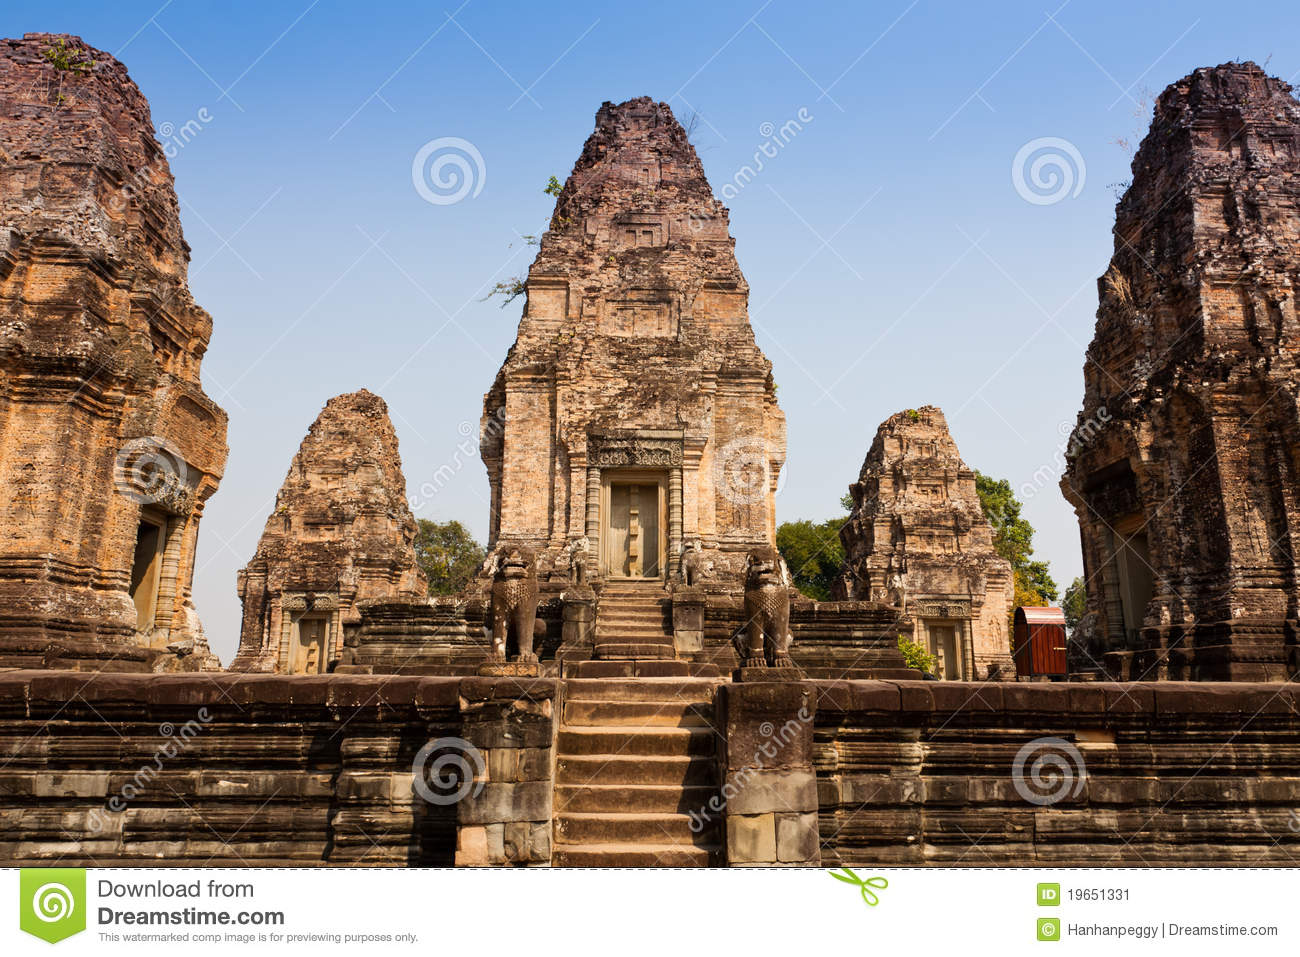 East Mebon Temple of Angkor, Cambodia